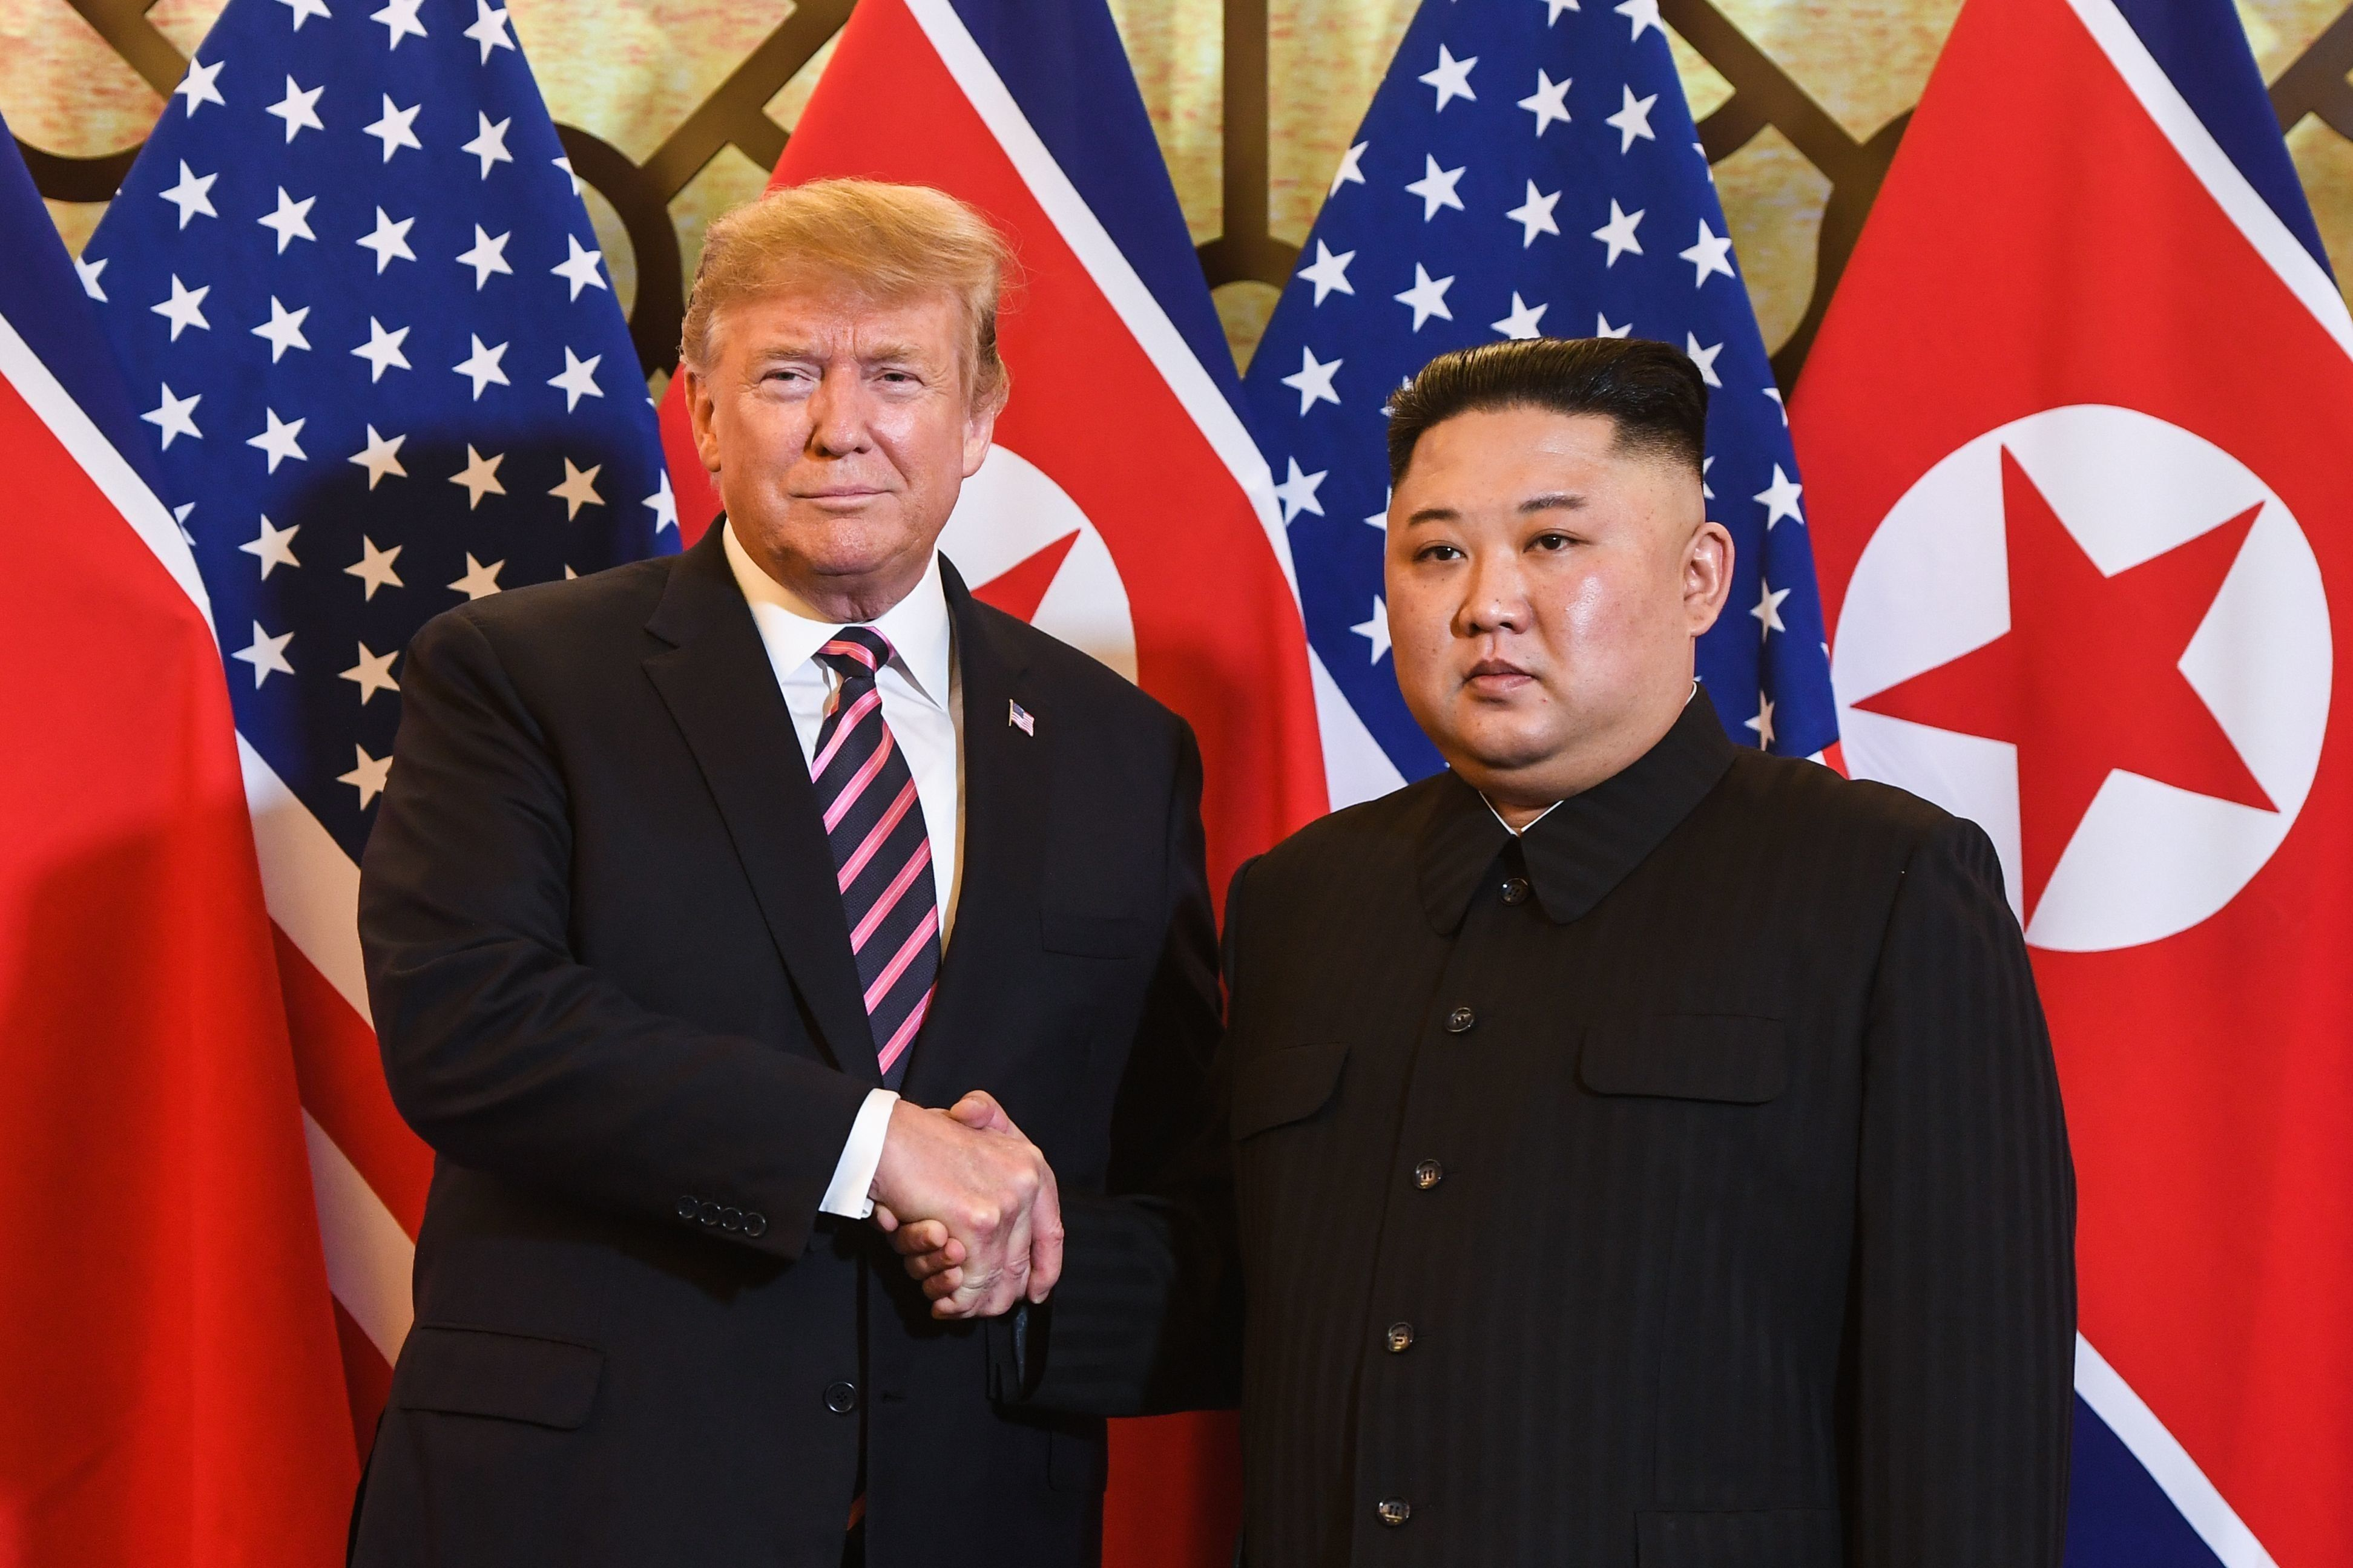 US President Donald Trump (L) shakes hands with North Korea's leader Kim Jong Un before a meeting at the Sofitel Legend Metropole hotel in Hanoi on February 27, 2019. (Photo by Saul LOEB / AFP)        (Photo credit should read SAUL LOEB/AFP/Getty Images)